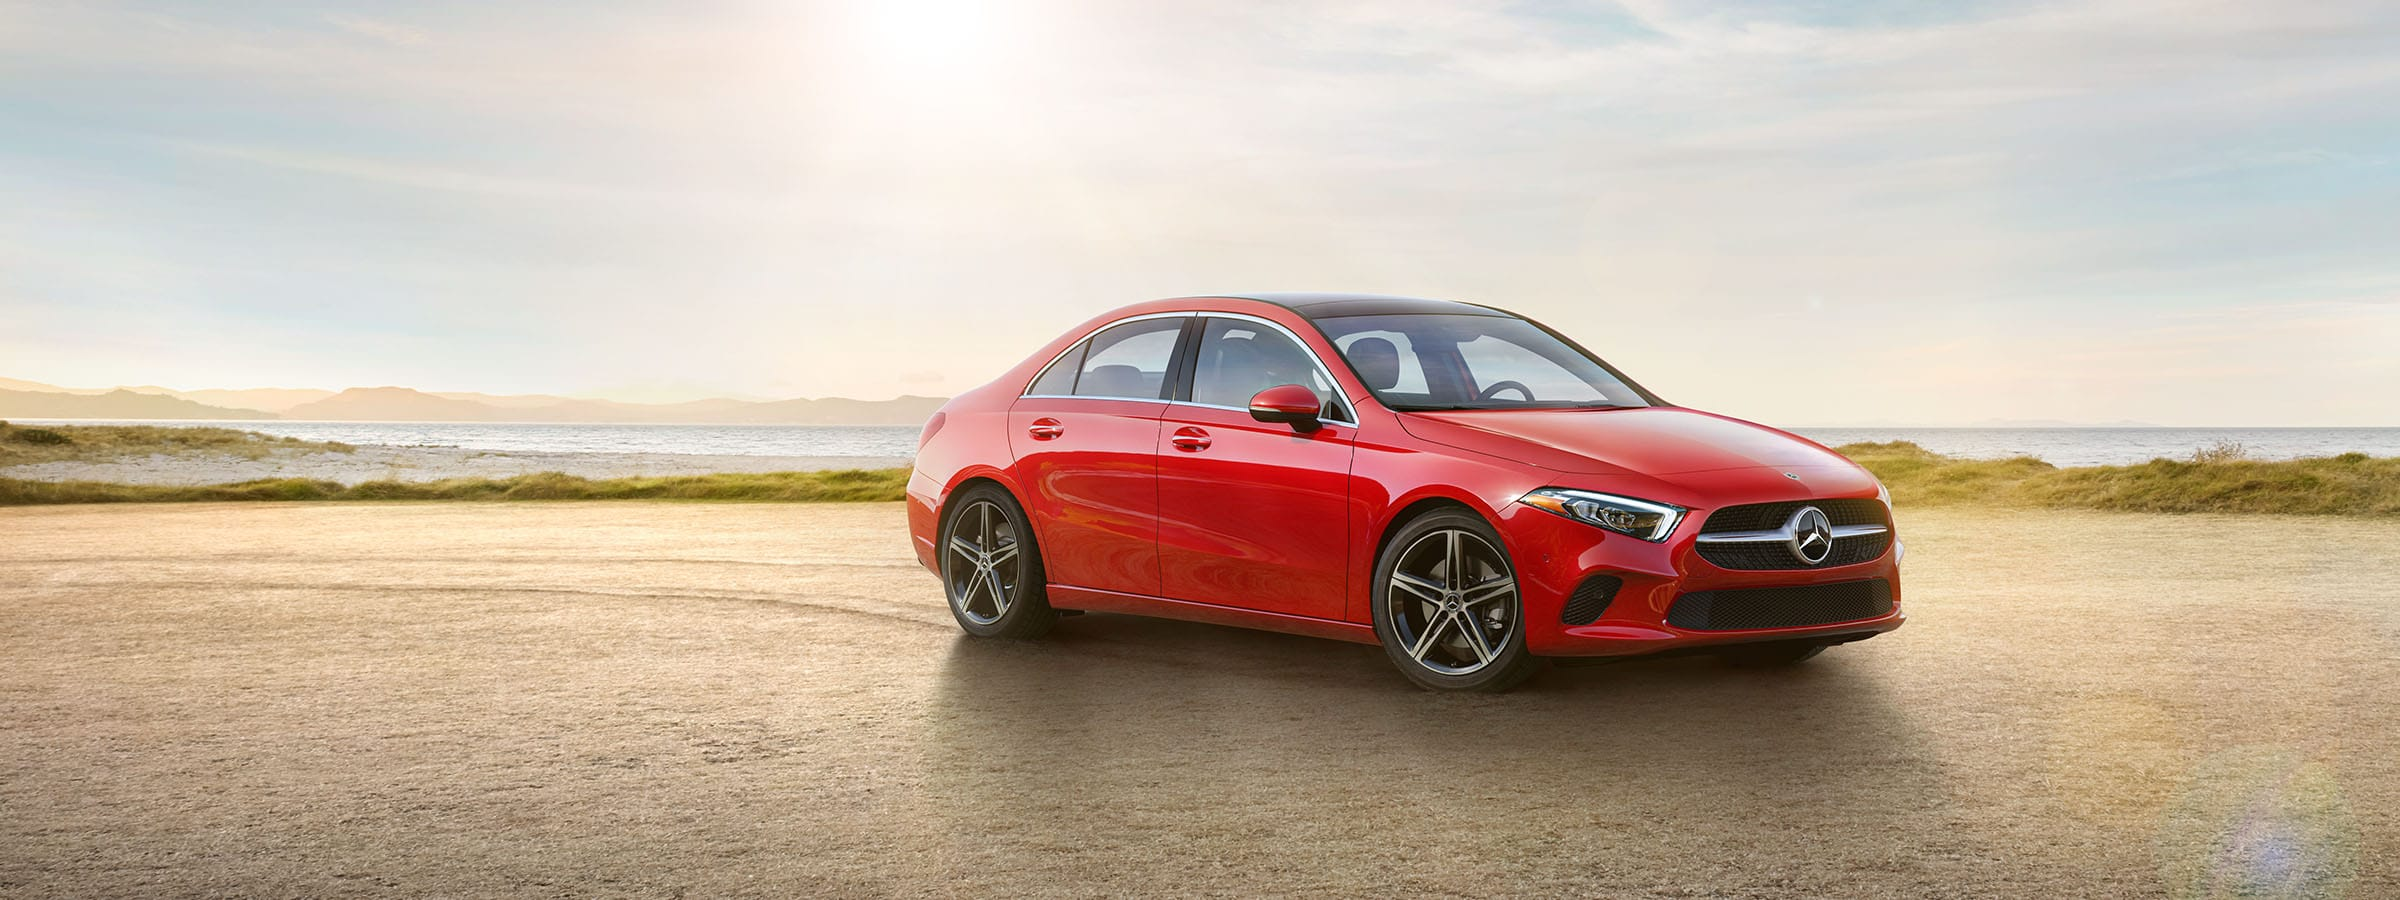 The 2019 A-Class Sedan in Jupiter Red with LED Lights parked on a beach.